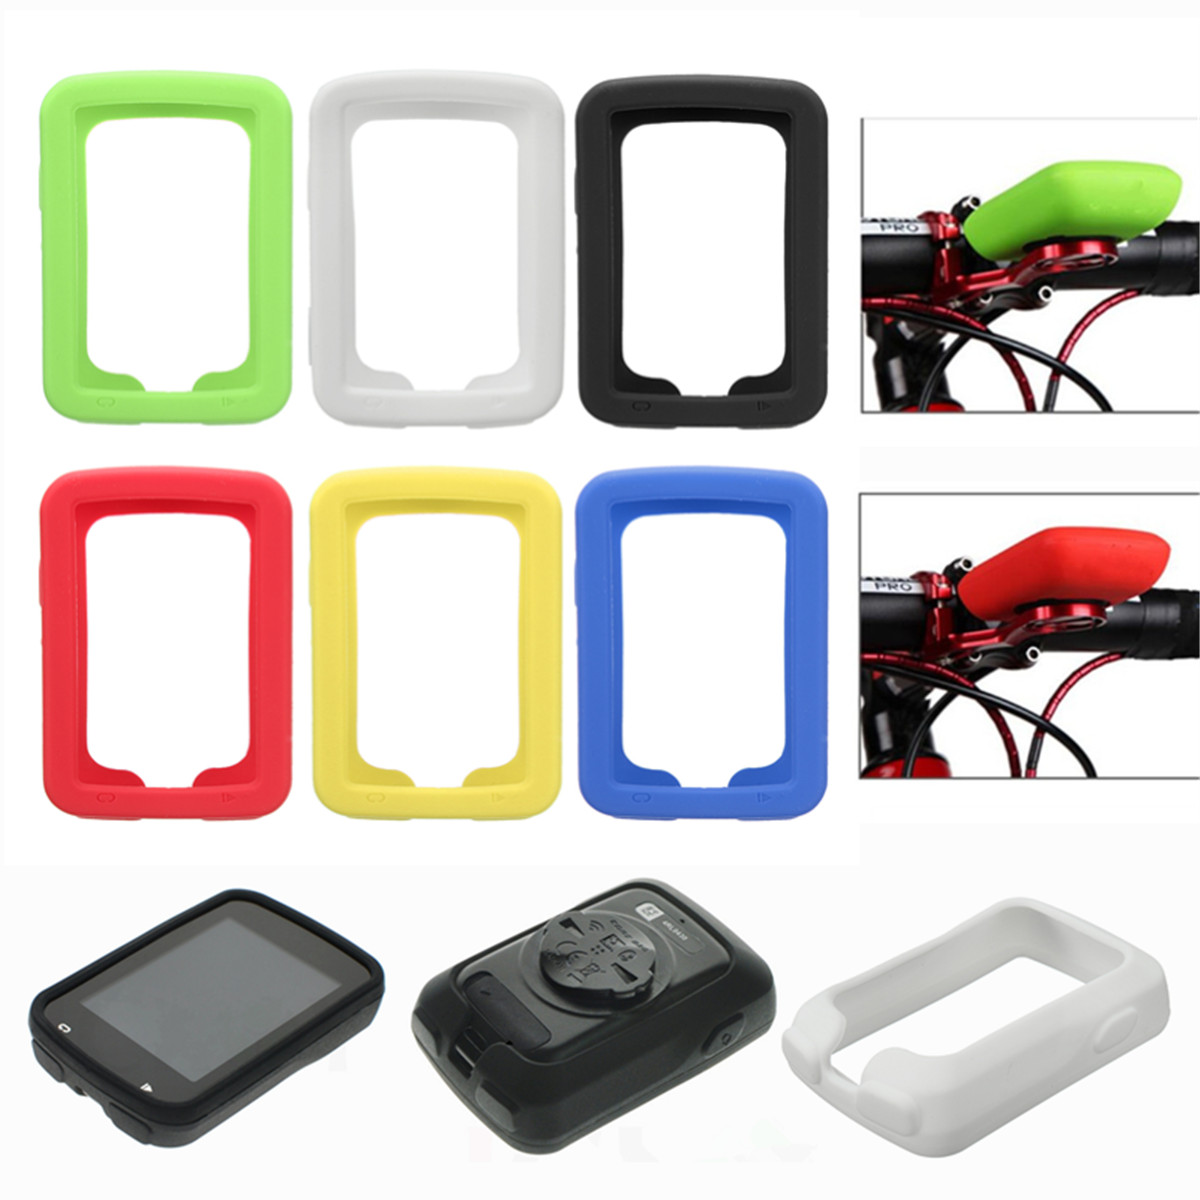 BIKIGHT Silicone Gel Case Cover for Garmin Edge 820 / E